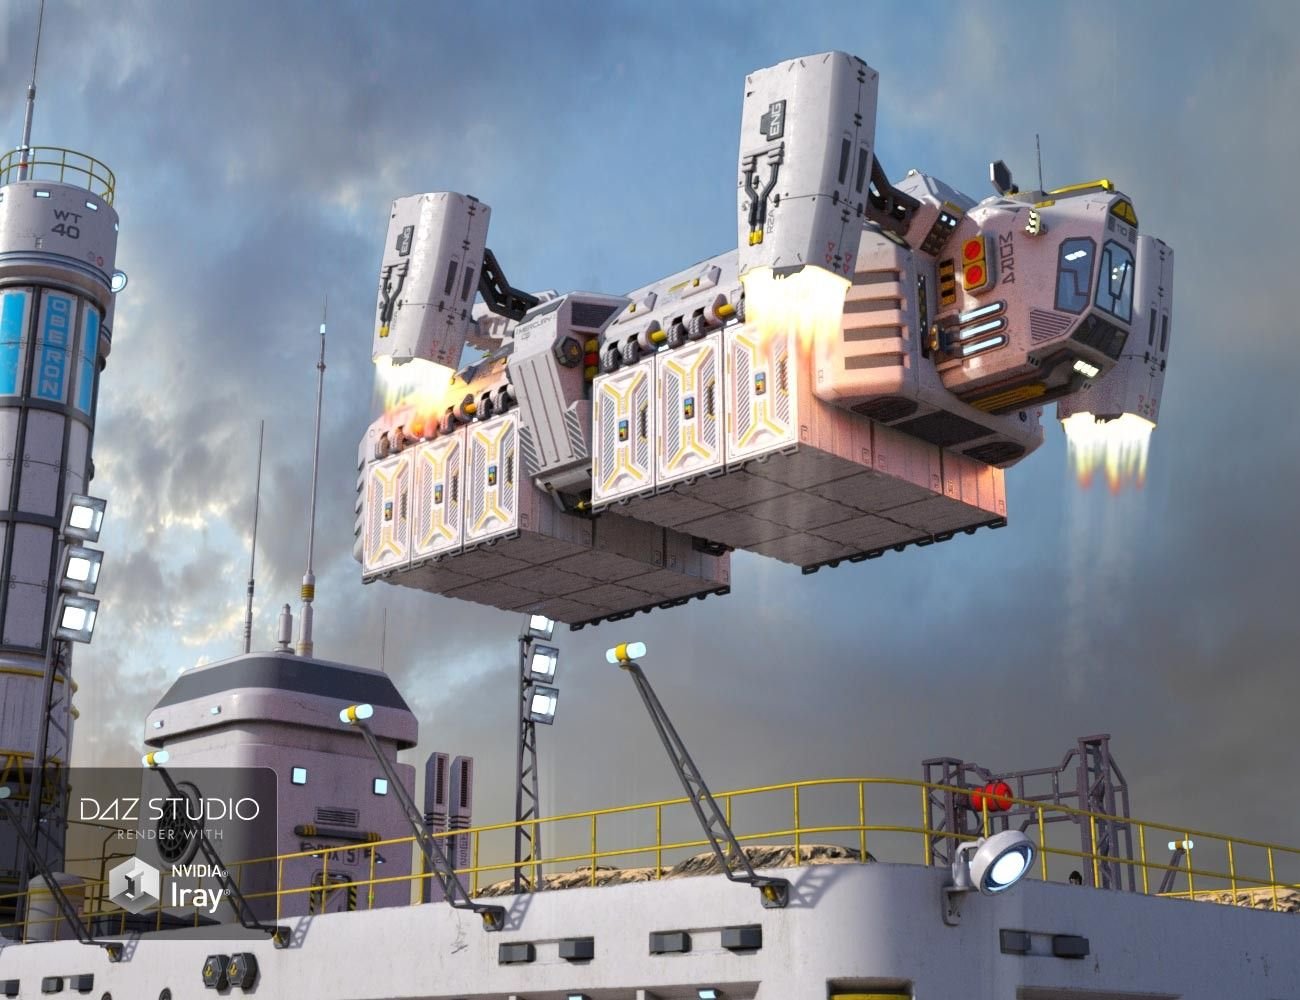 Scifi Cargo Ship 3D Models and 3D Software by Daz 3D